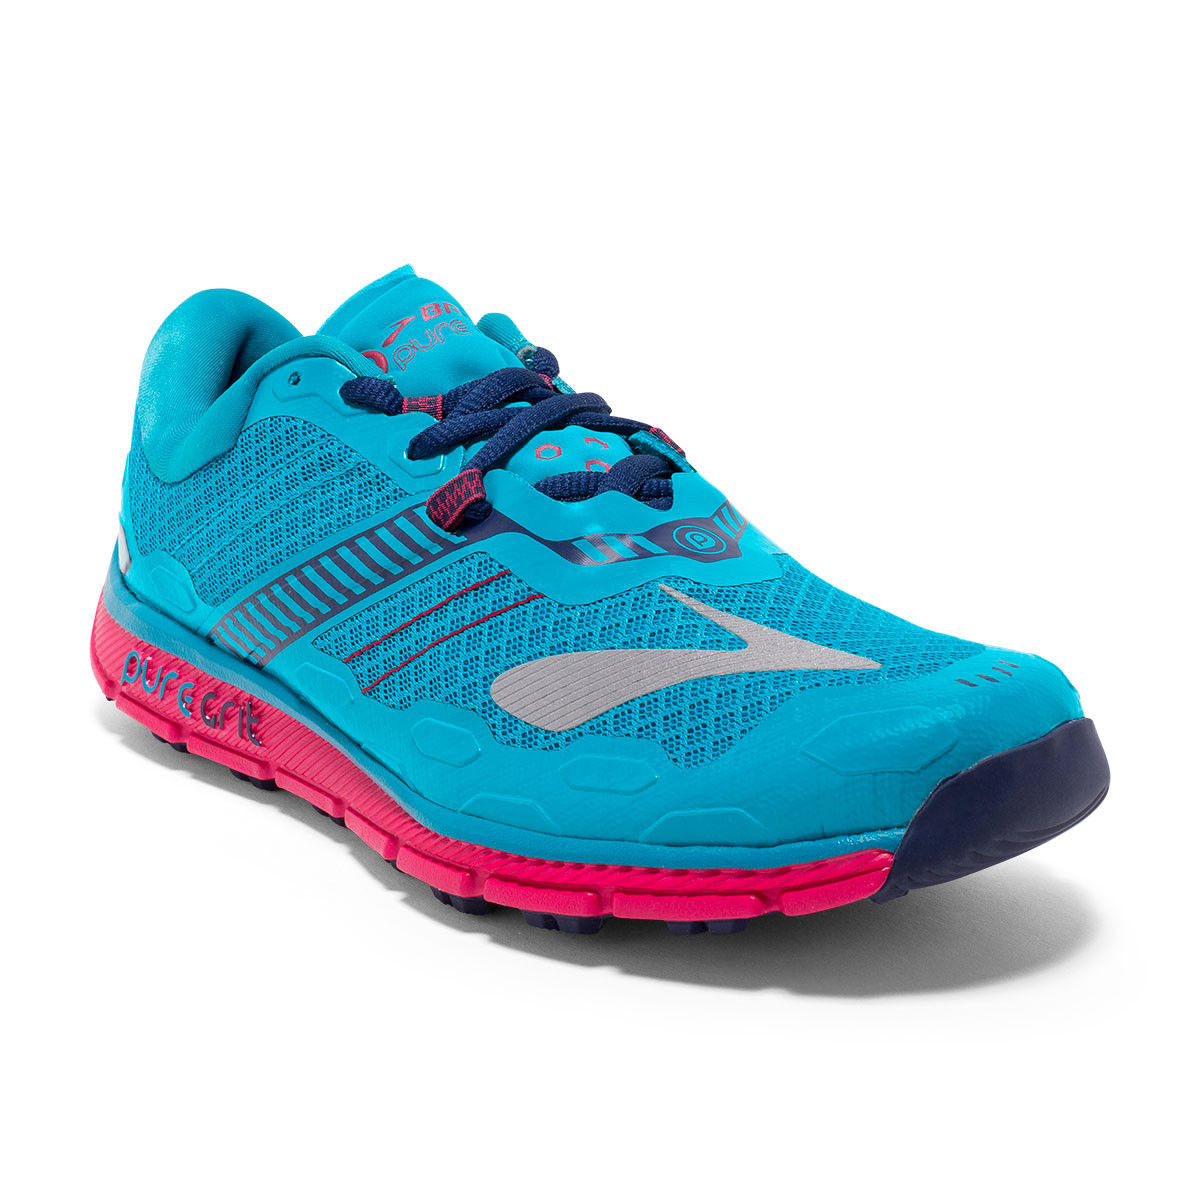 352ffb64a087f BROOKS PURE GRIT 5 LADIES - Poobie Naidoos